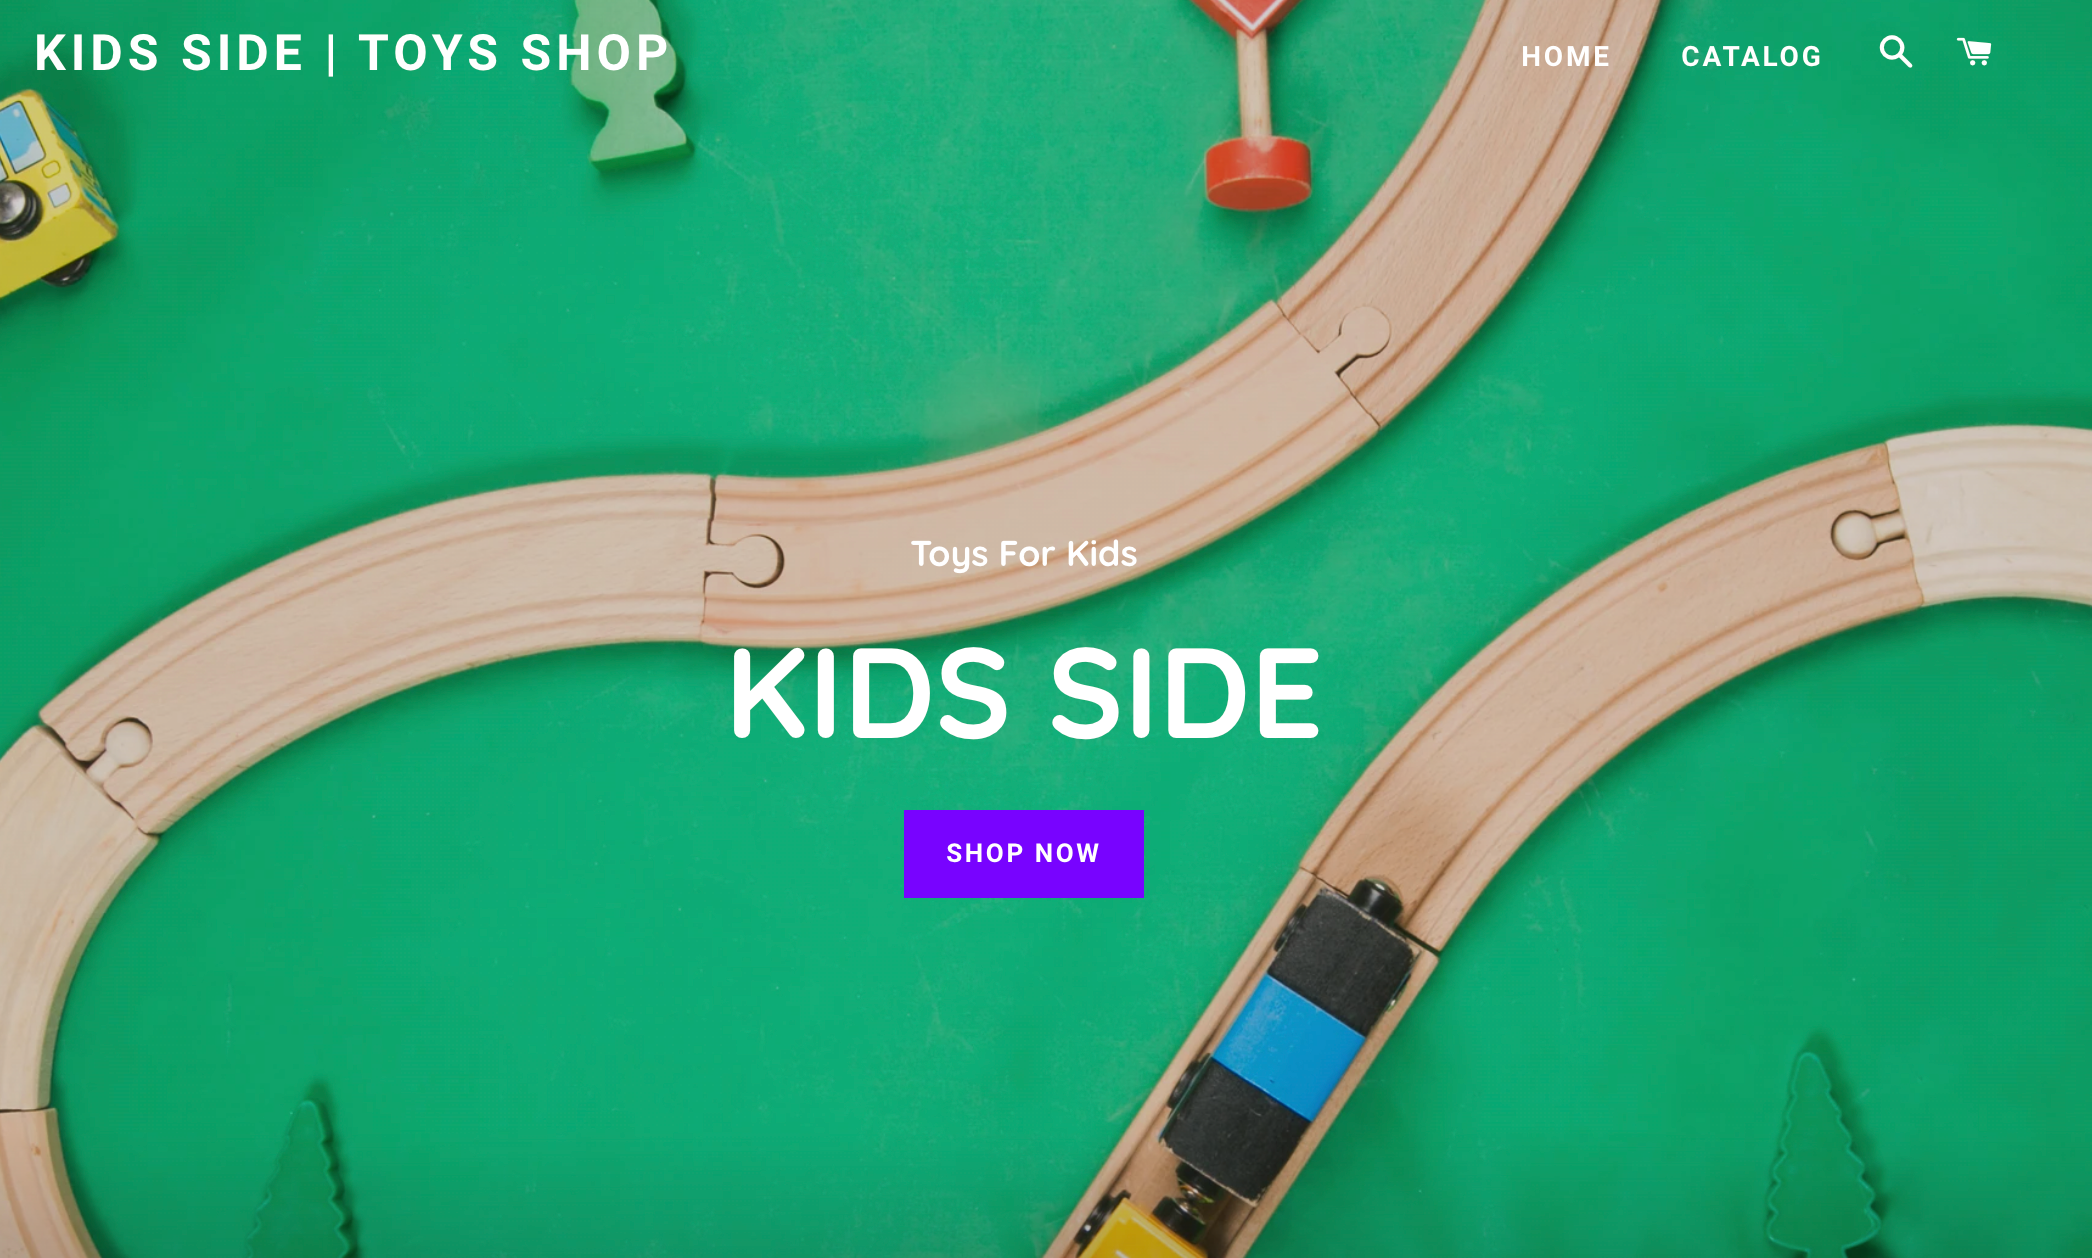 kids side toy shop